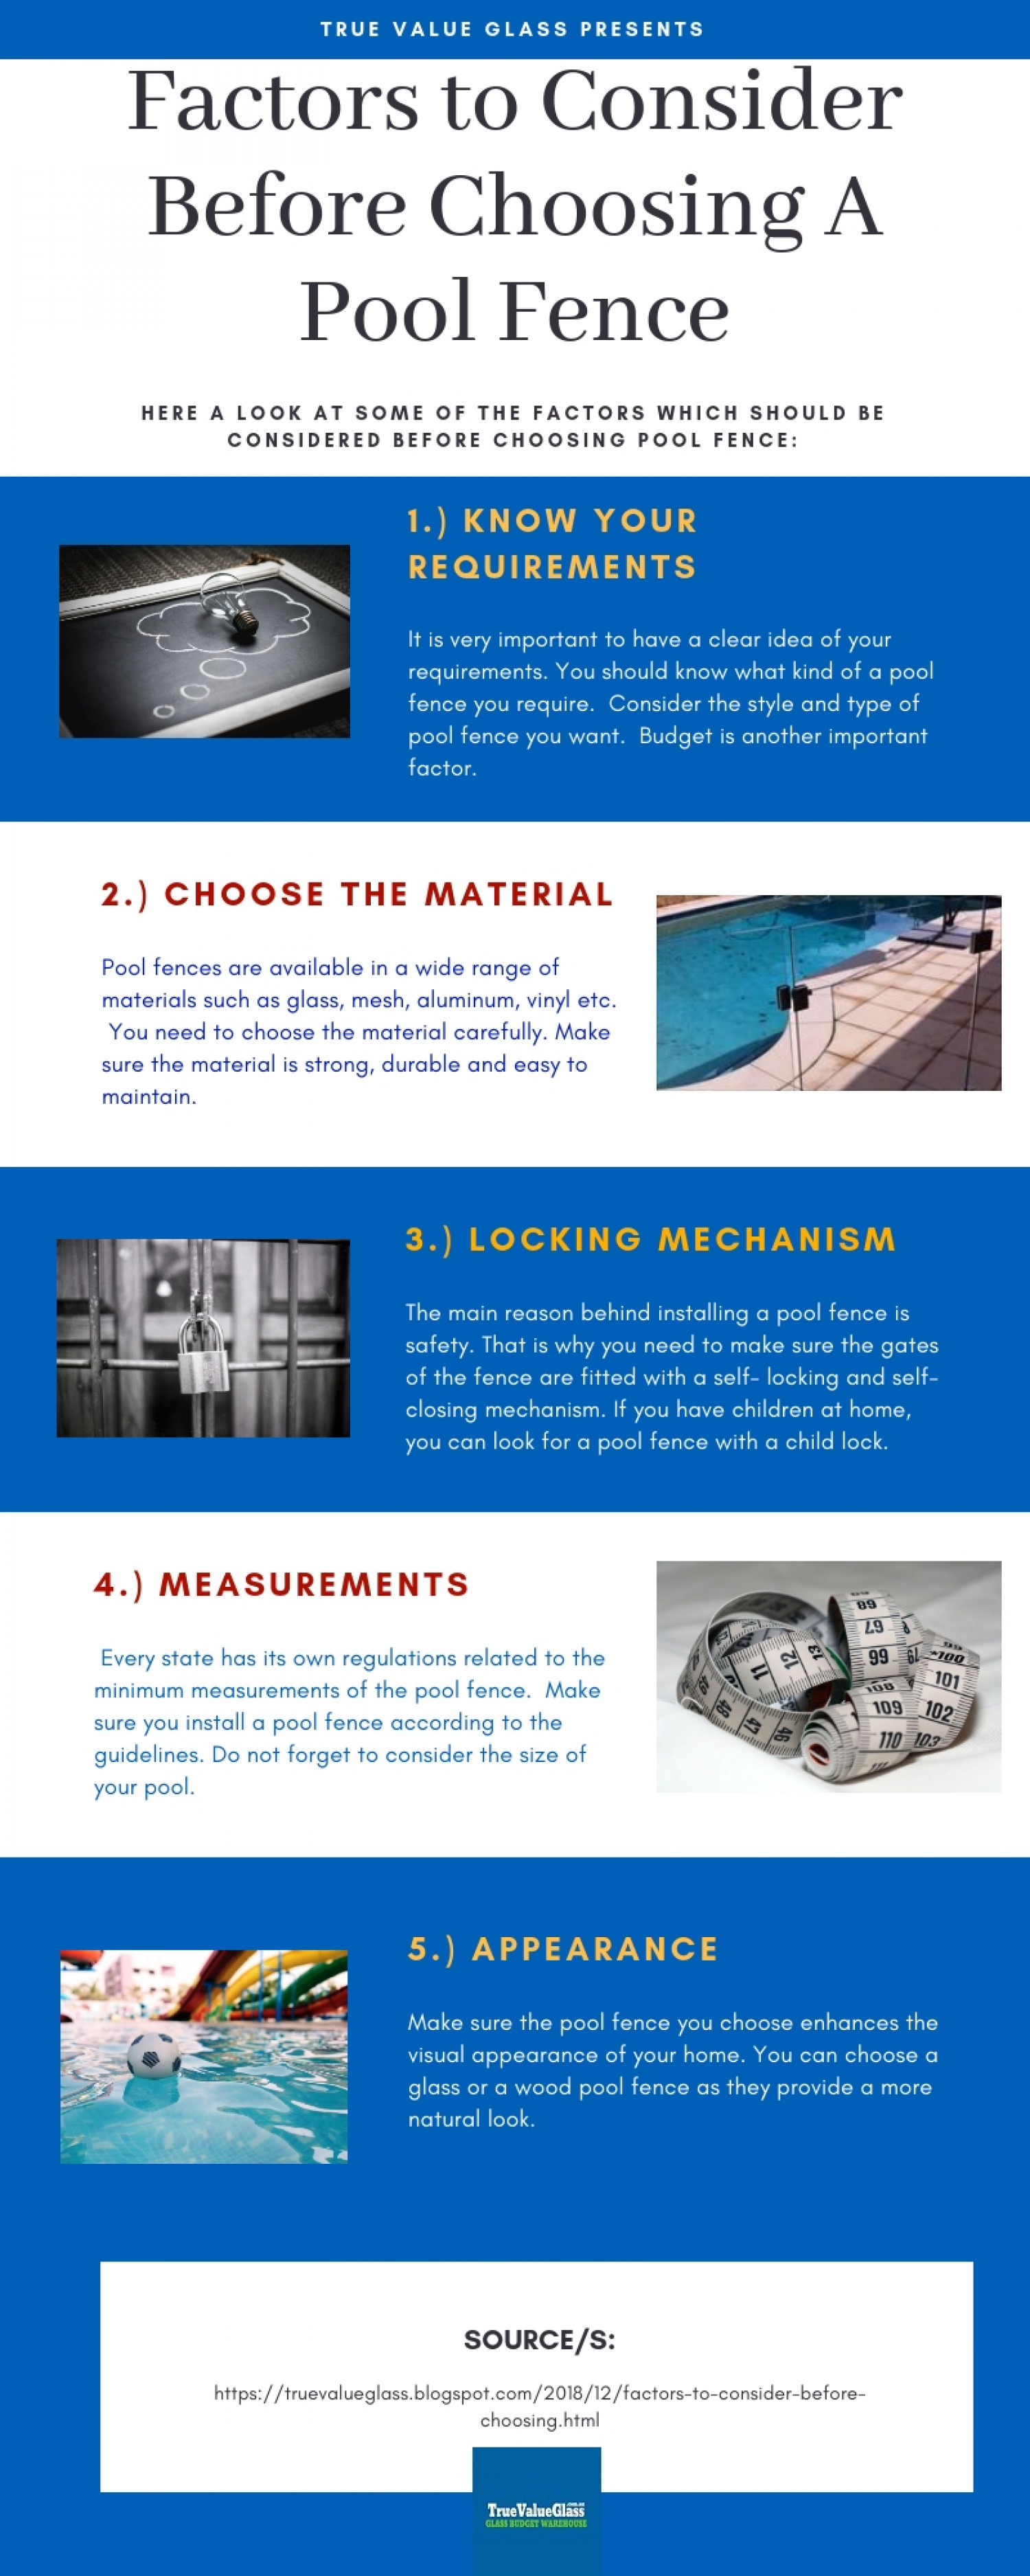 Factors to Consider Before Choosing A Pool Fence Infographic